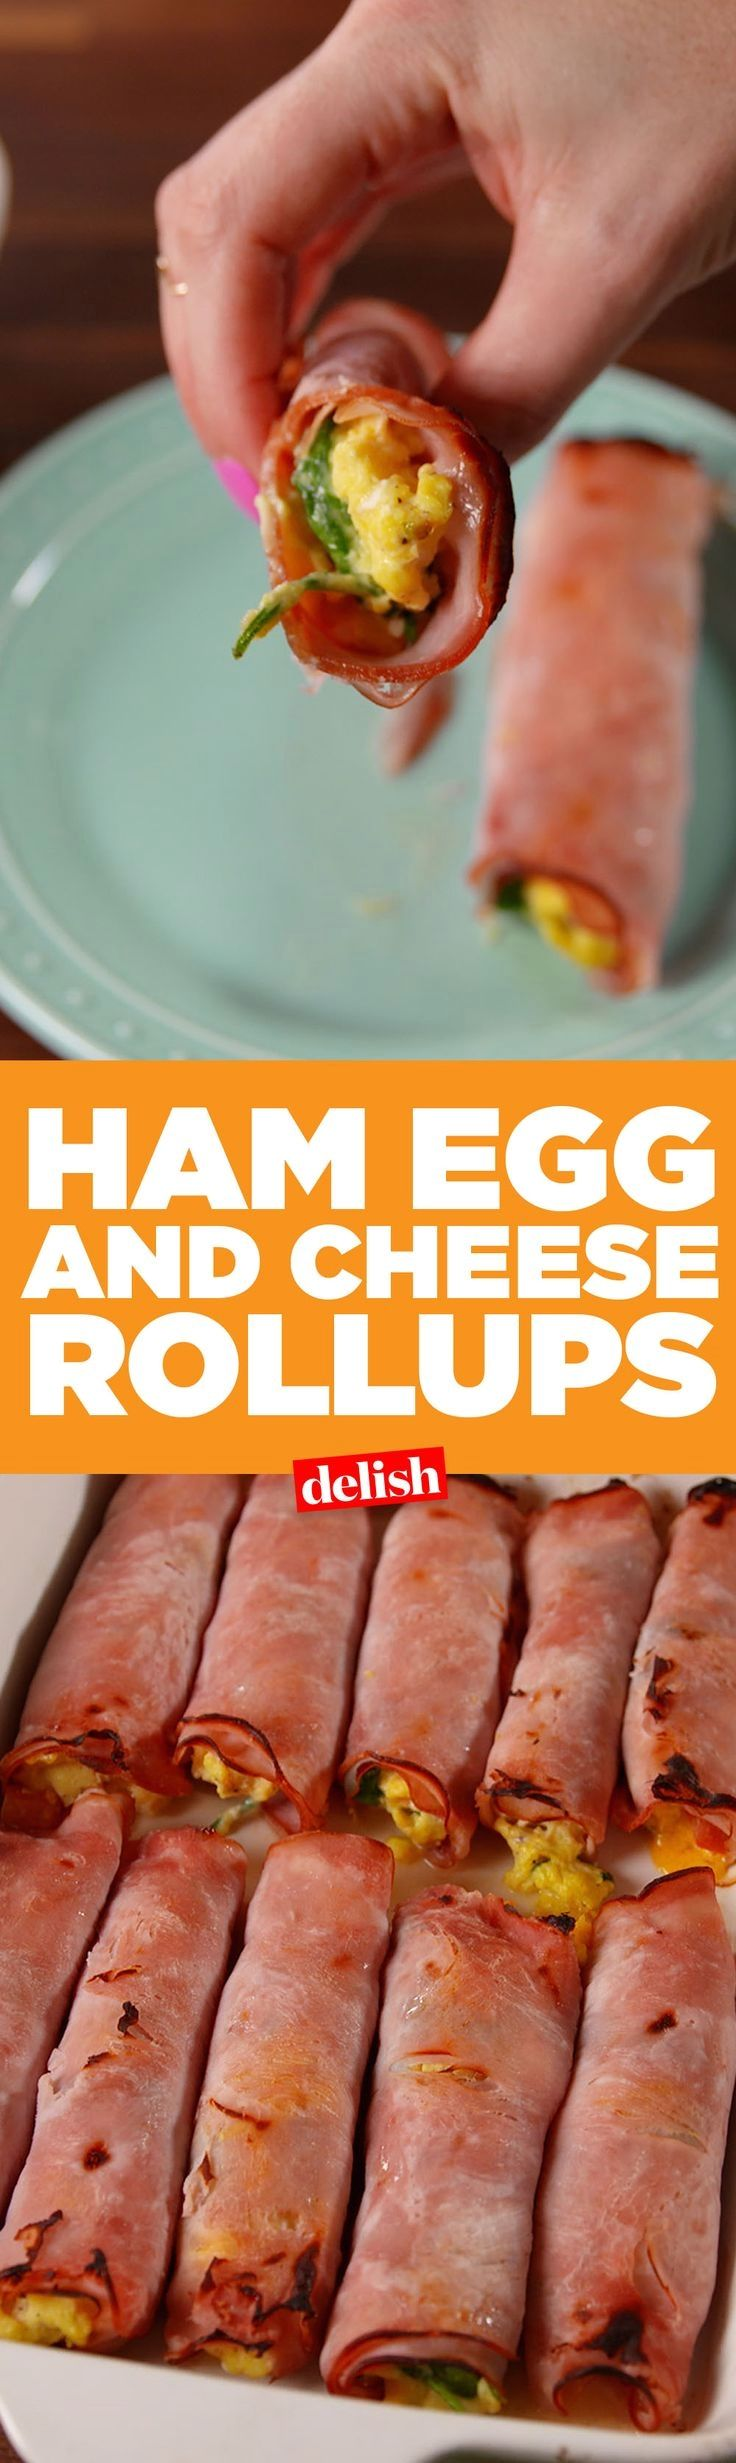 Ham, Egg & Cheese Roll-Ups are like low-carb breakfast burritos. Get the recipe on Delish.com.YUM!!!